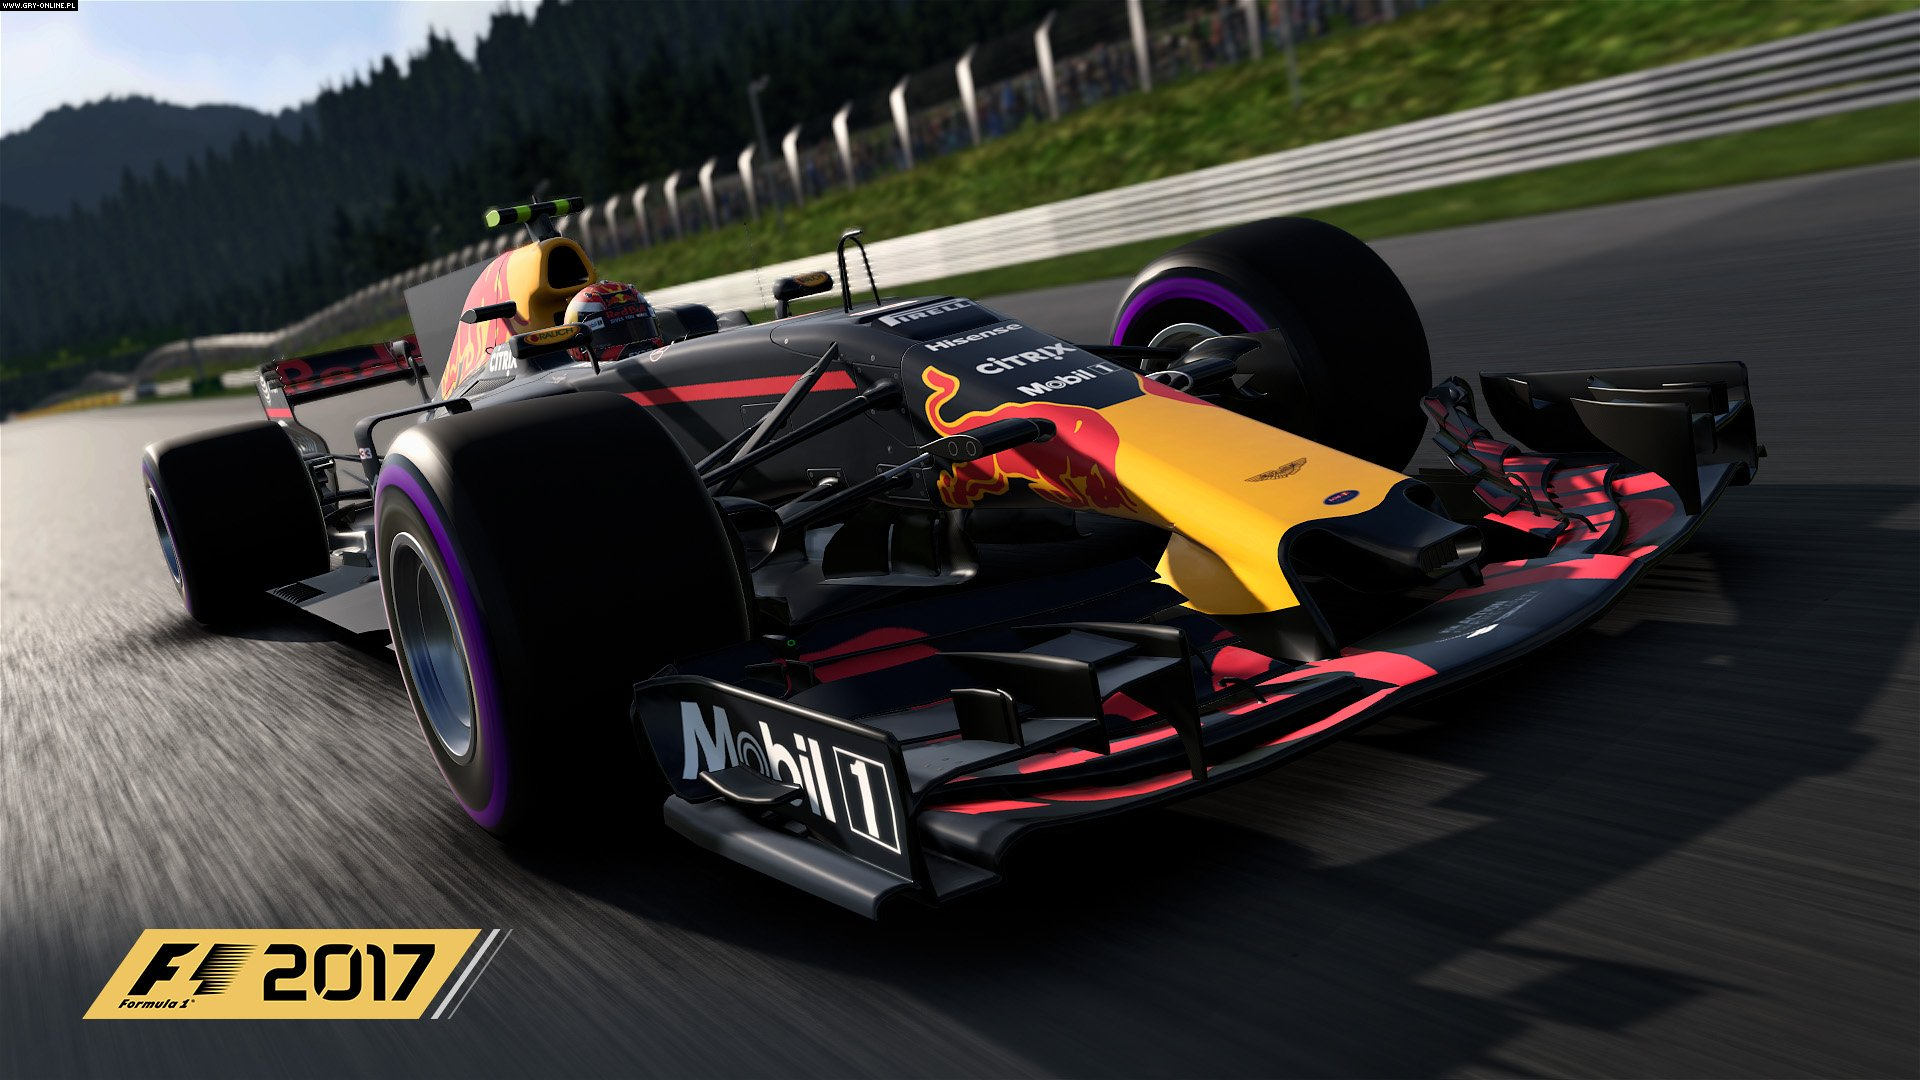 F1 2017 PC, PS4, XONE Games Image 31/31, Codemasters Software